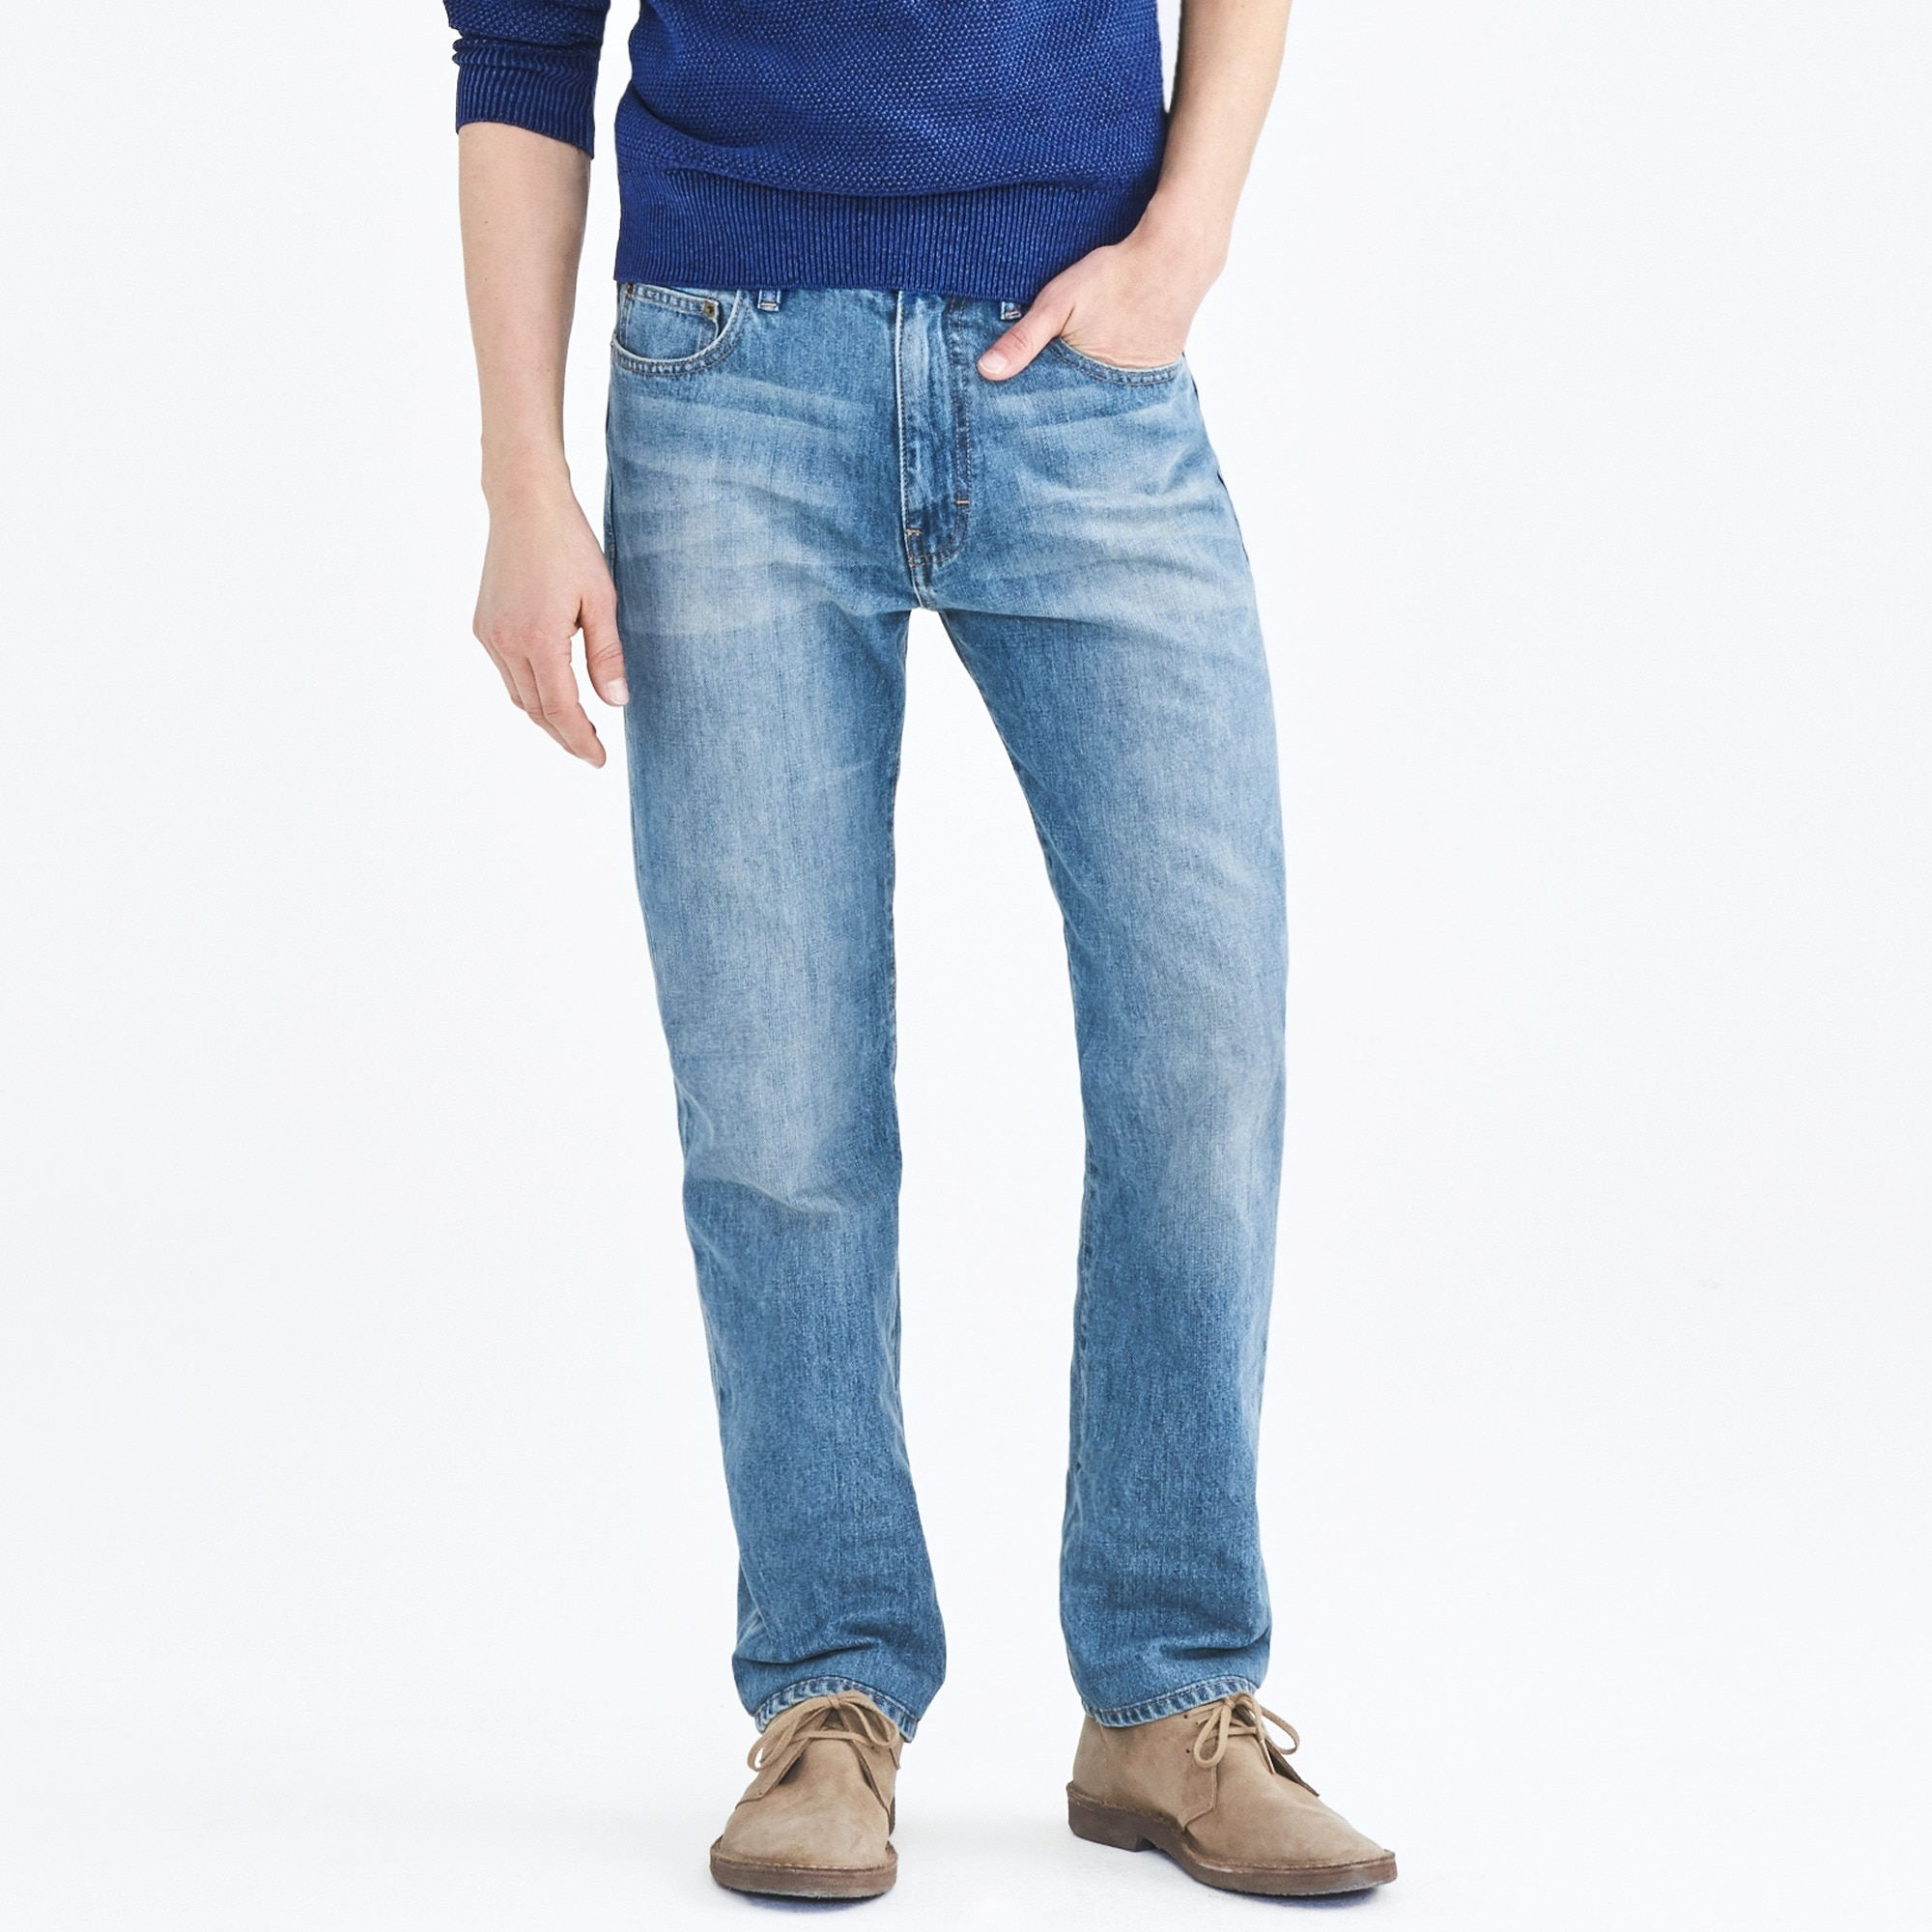 sullivan jean in light wash : factorymen bootcut